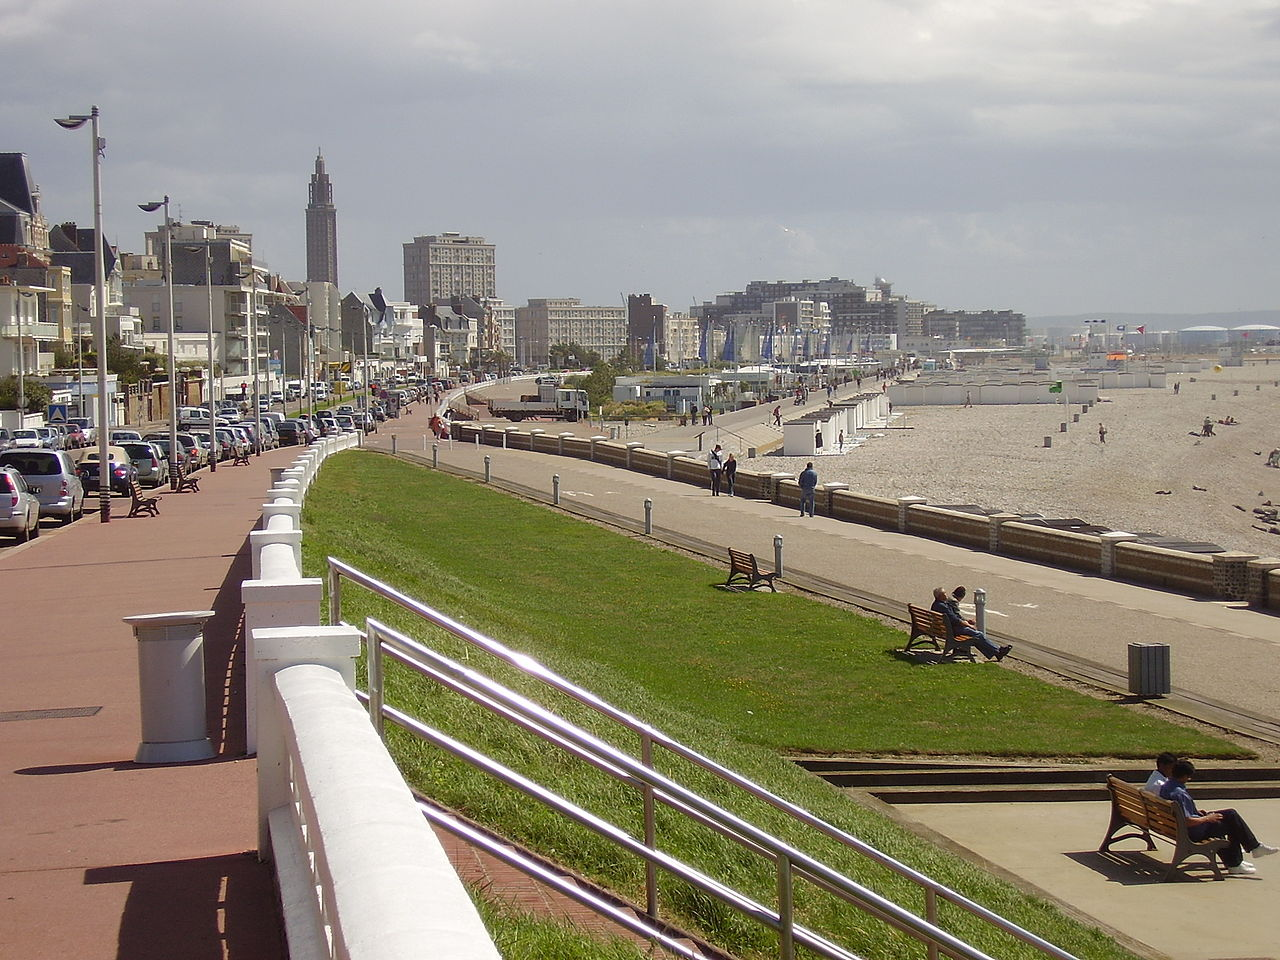 Le-Havre-seafront-beach